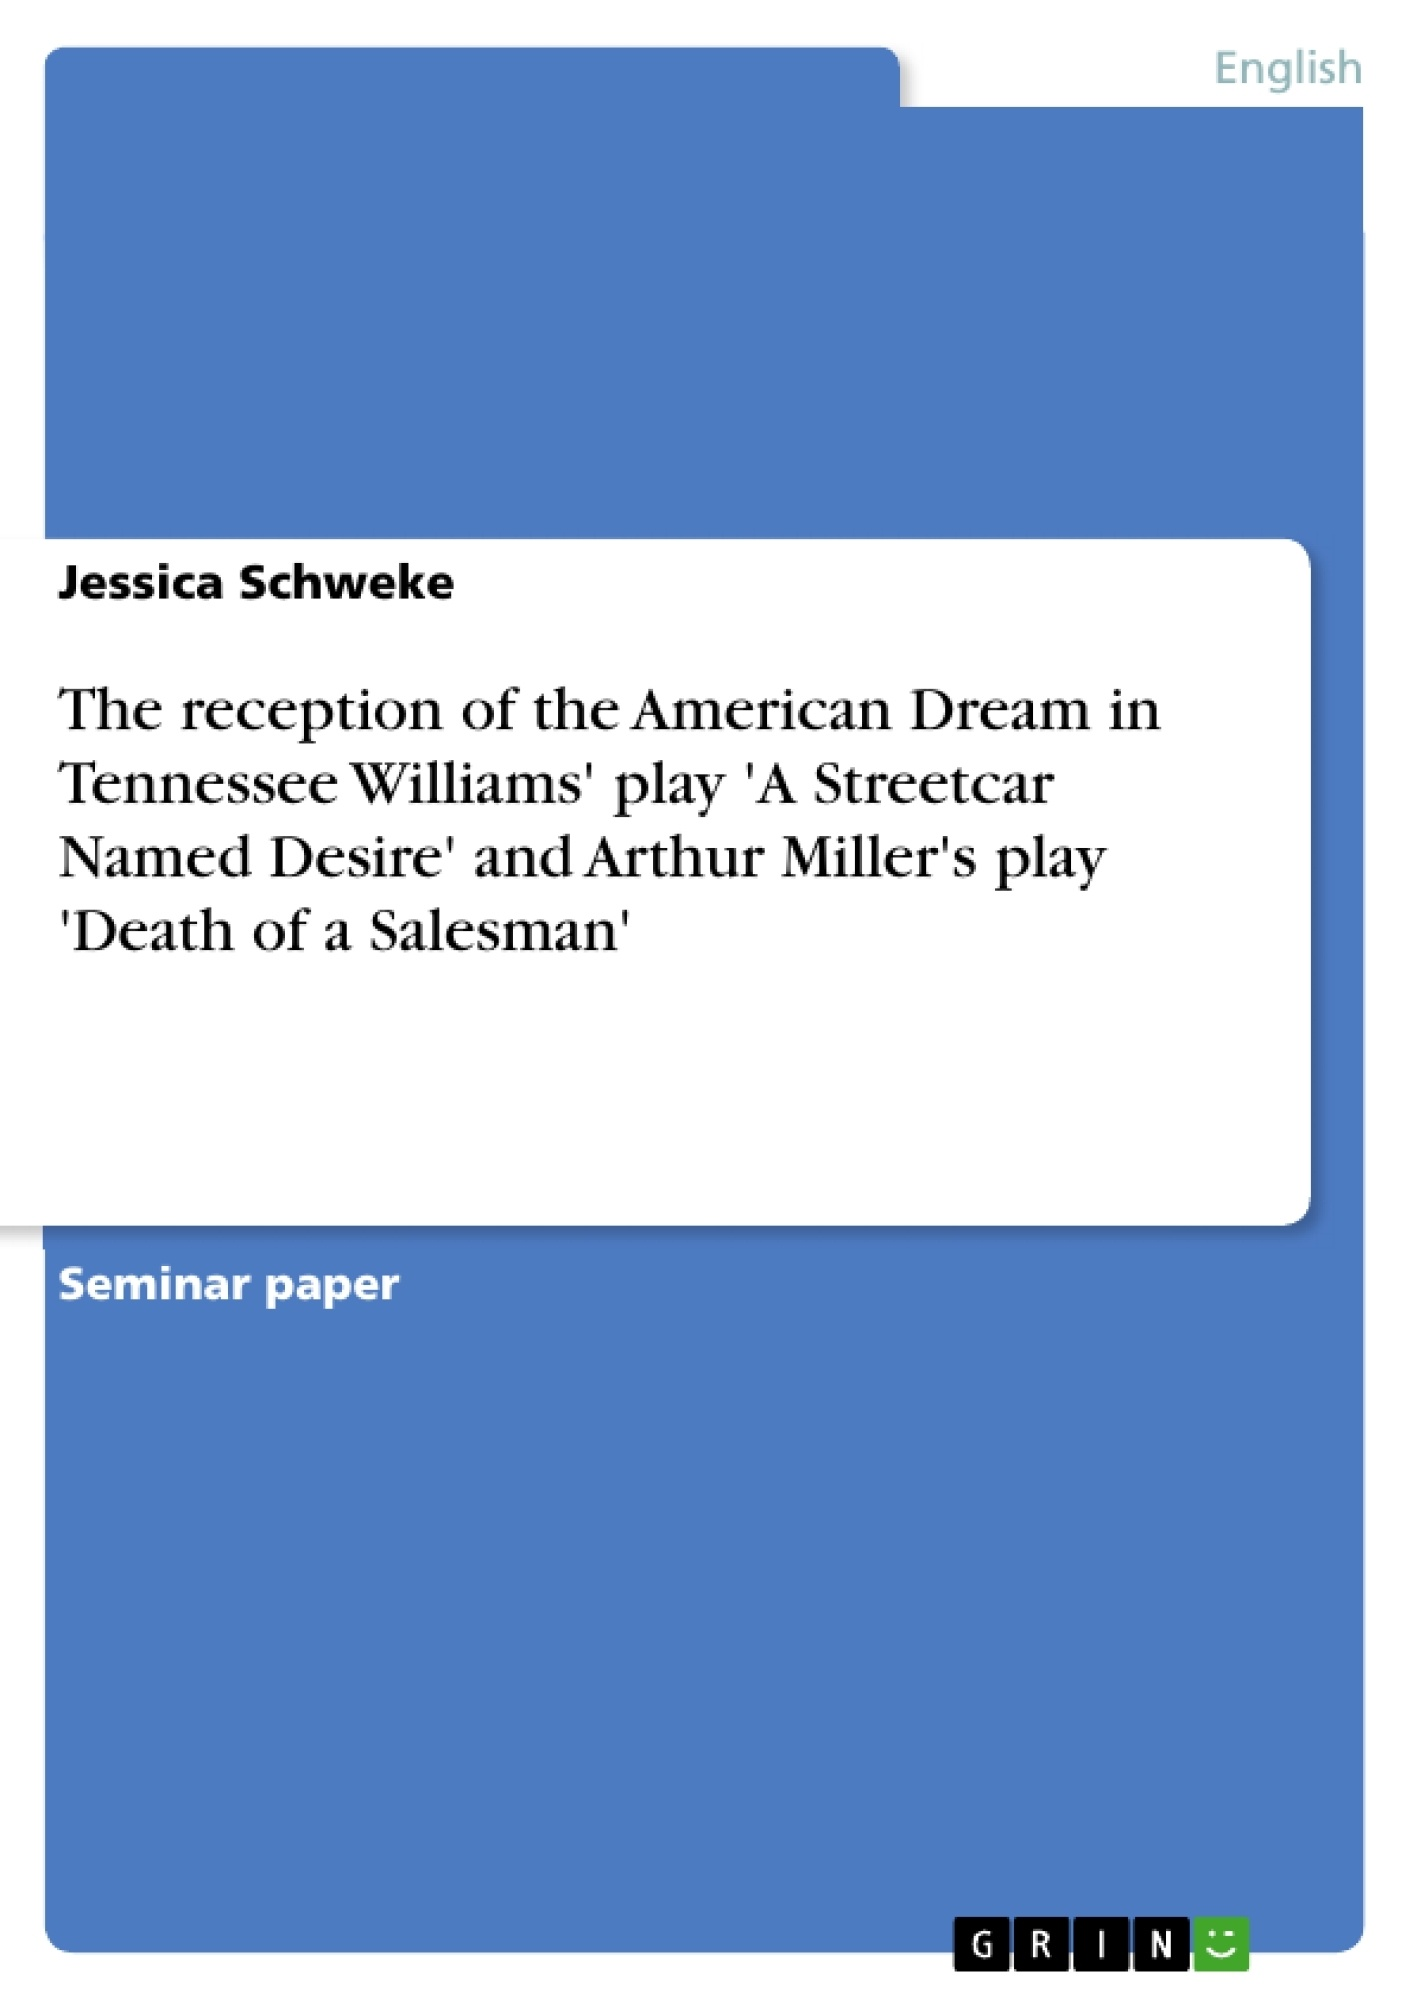 Title: The reception of the American Dream in Tennessee Williams' play 'A Streetcar Named Desire' and Arthur Miller's play 'Death of a Salesman'